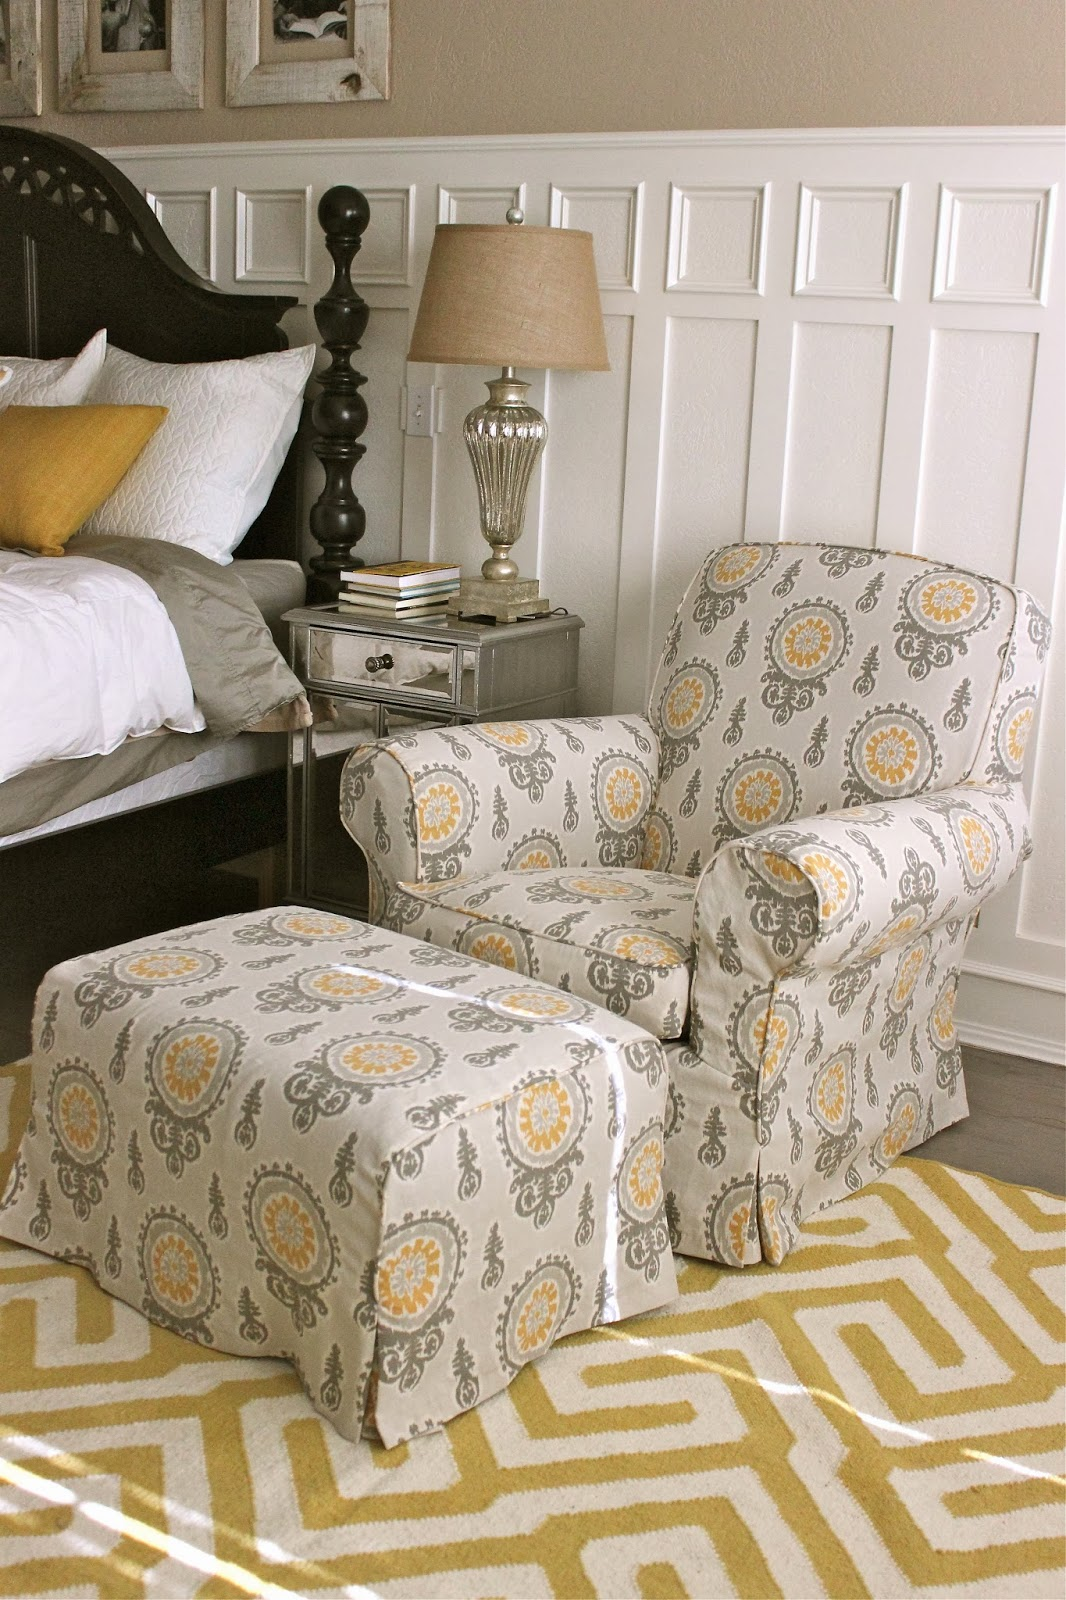 custom slipcovers by shelley gray yellow bedroom chair and ottoman. Black Bedroom Furniture Sets. Home Design Ideas